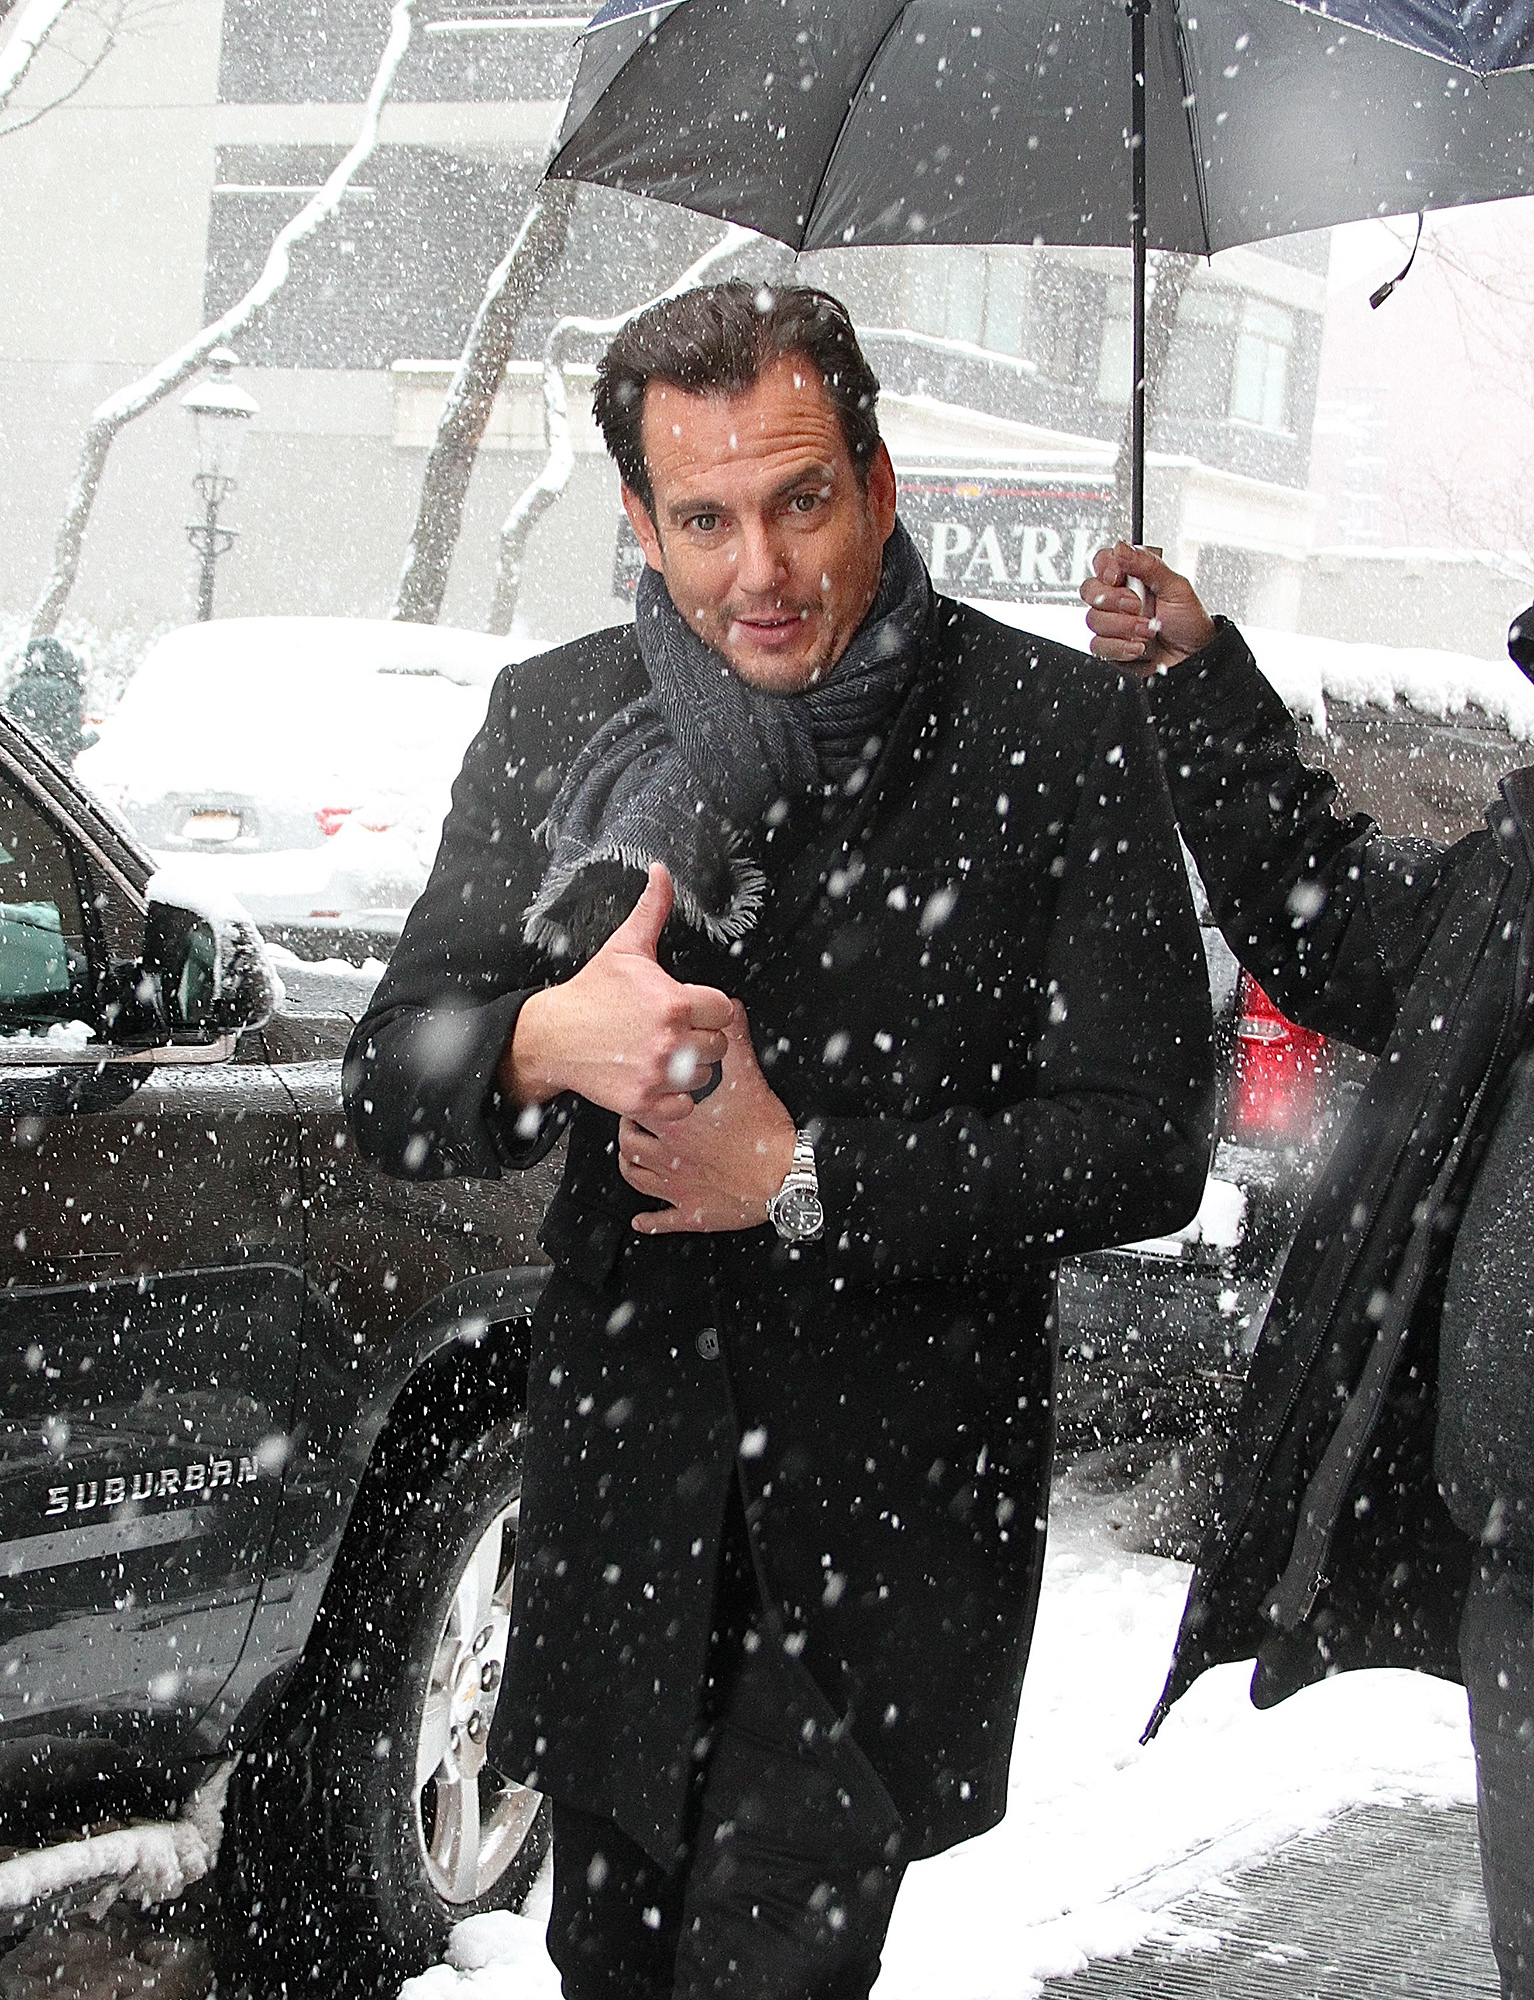 'The LEGO Batman Movie' star Will Arnett gives a thumbs up as he braves a snowstorm as he leaves 'The View' in NYC